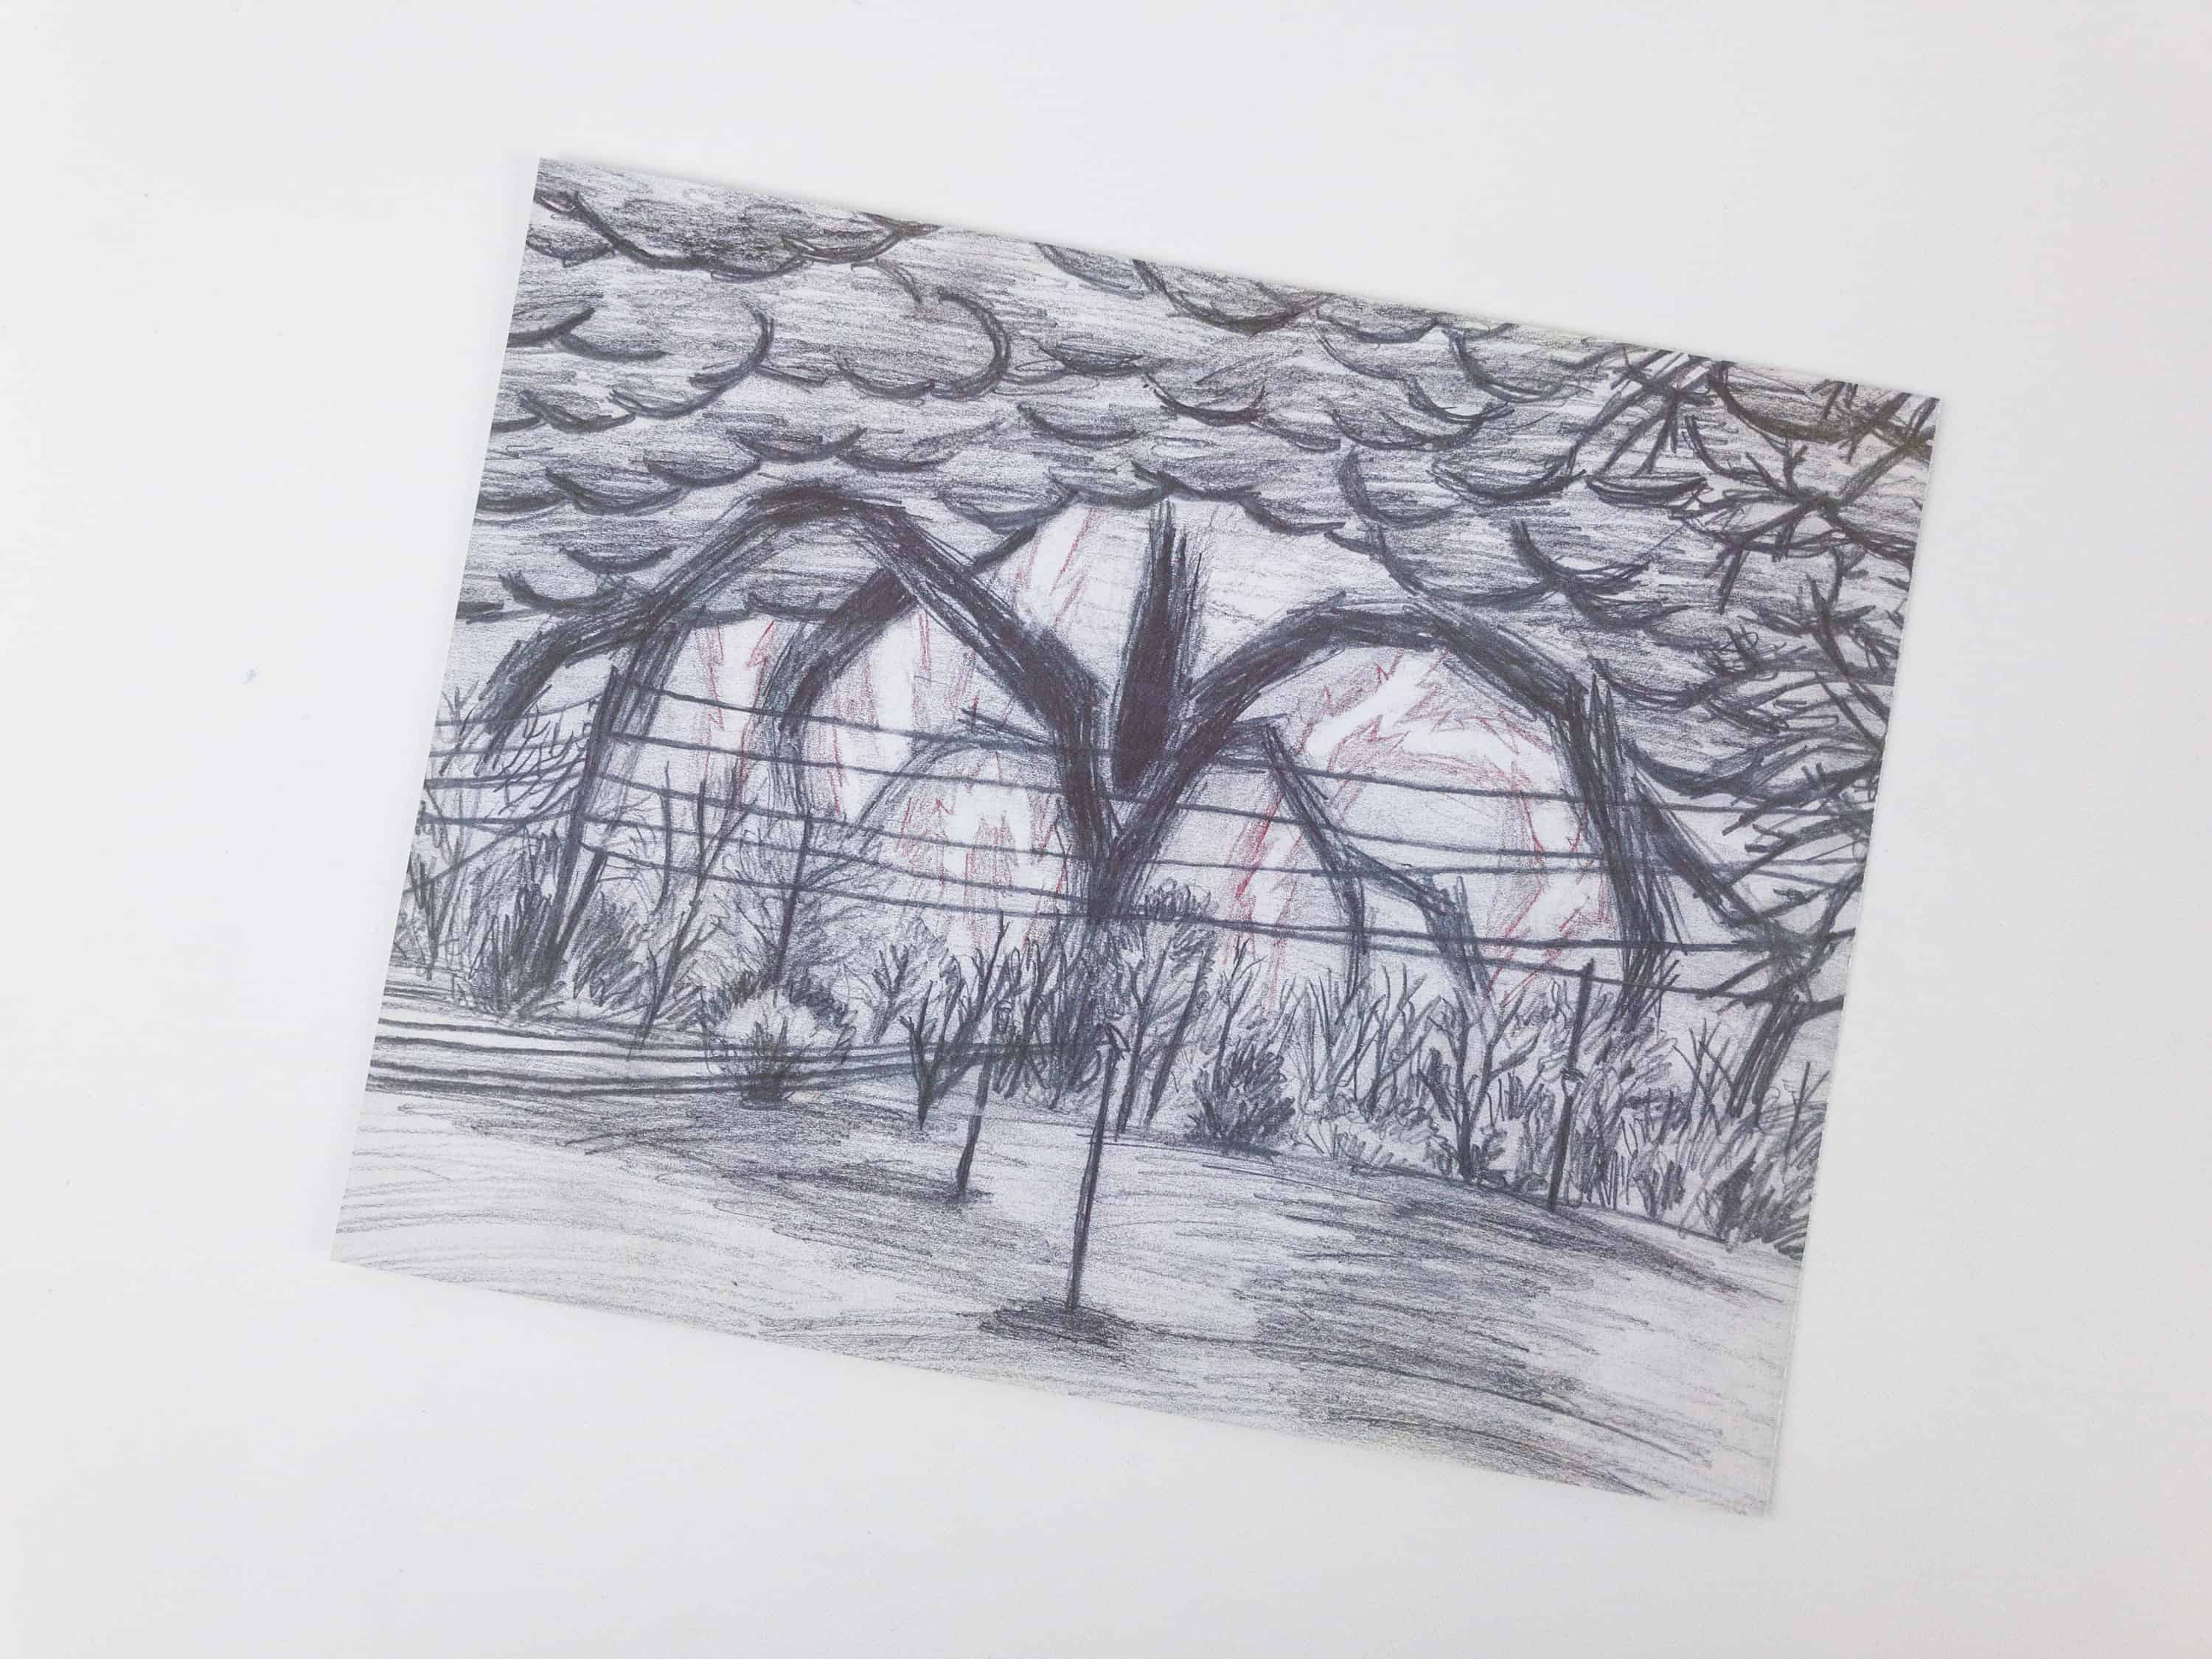 Stranger things clipart shadow monster. Pictures drawing art gallery